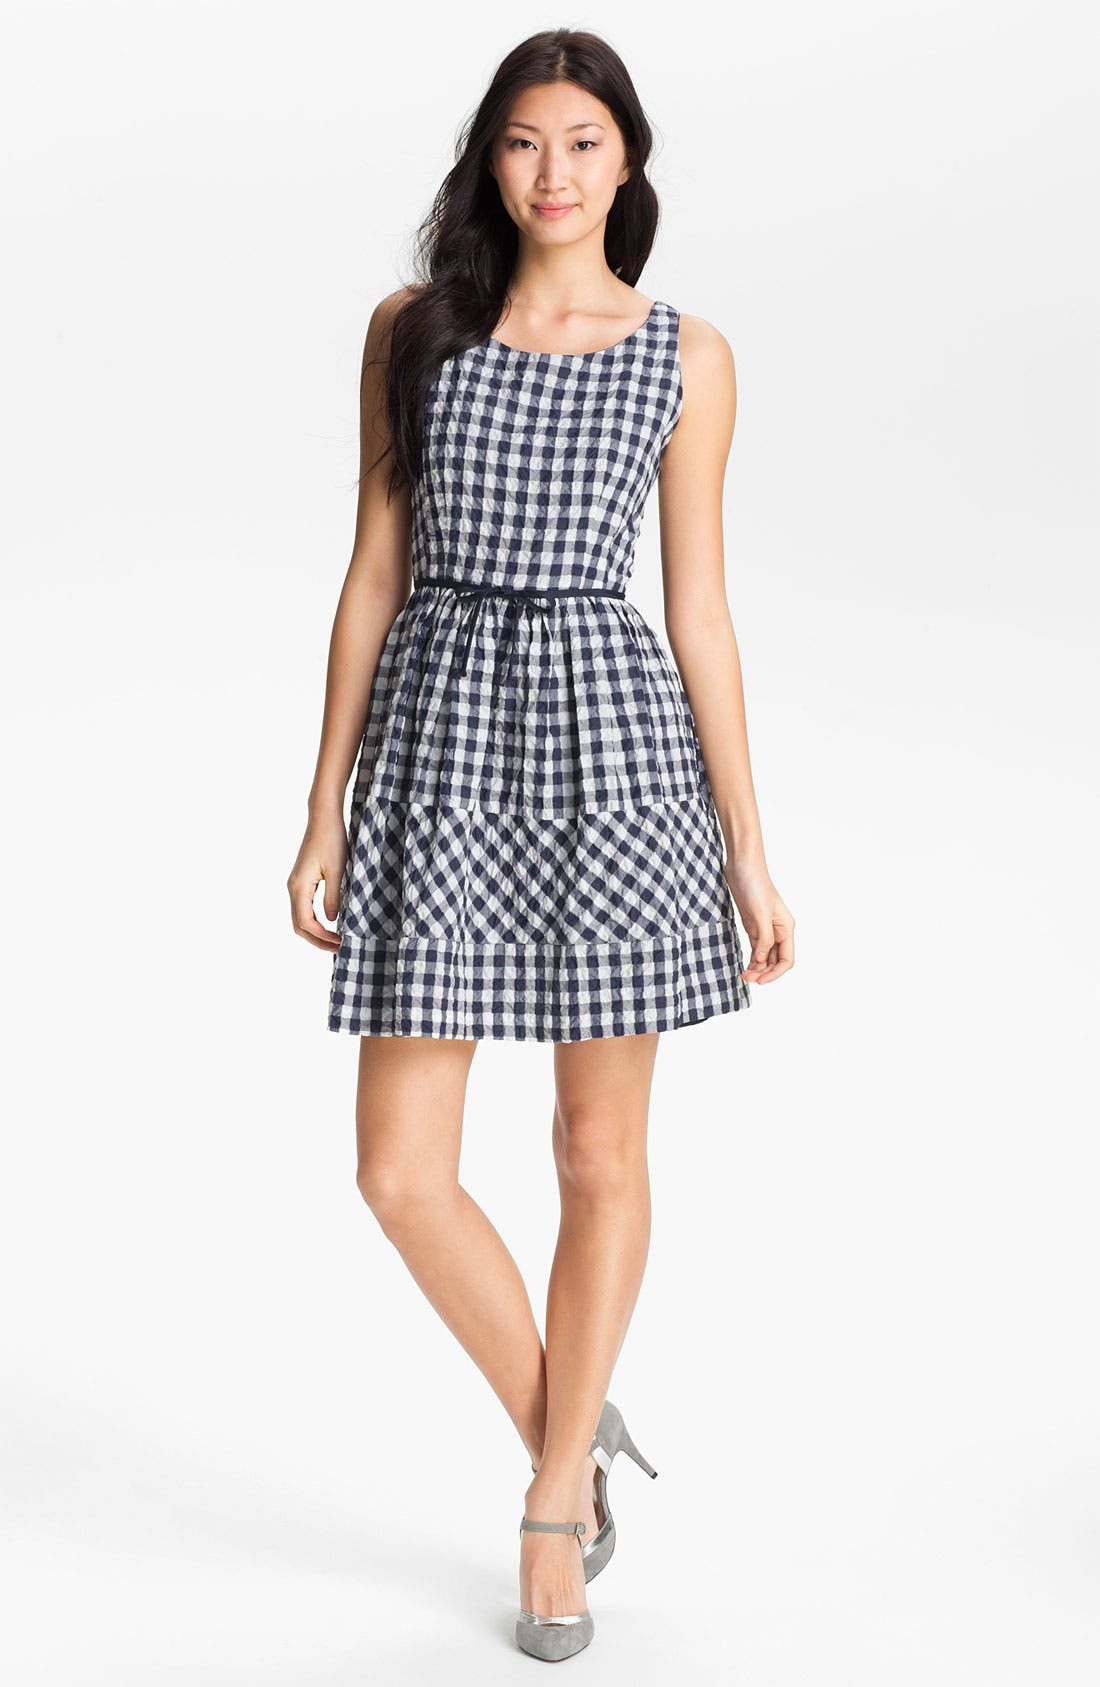 Main Image - Taylor Dresses Gingham Fit & Flare Dress